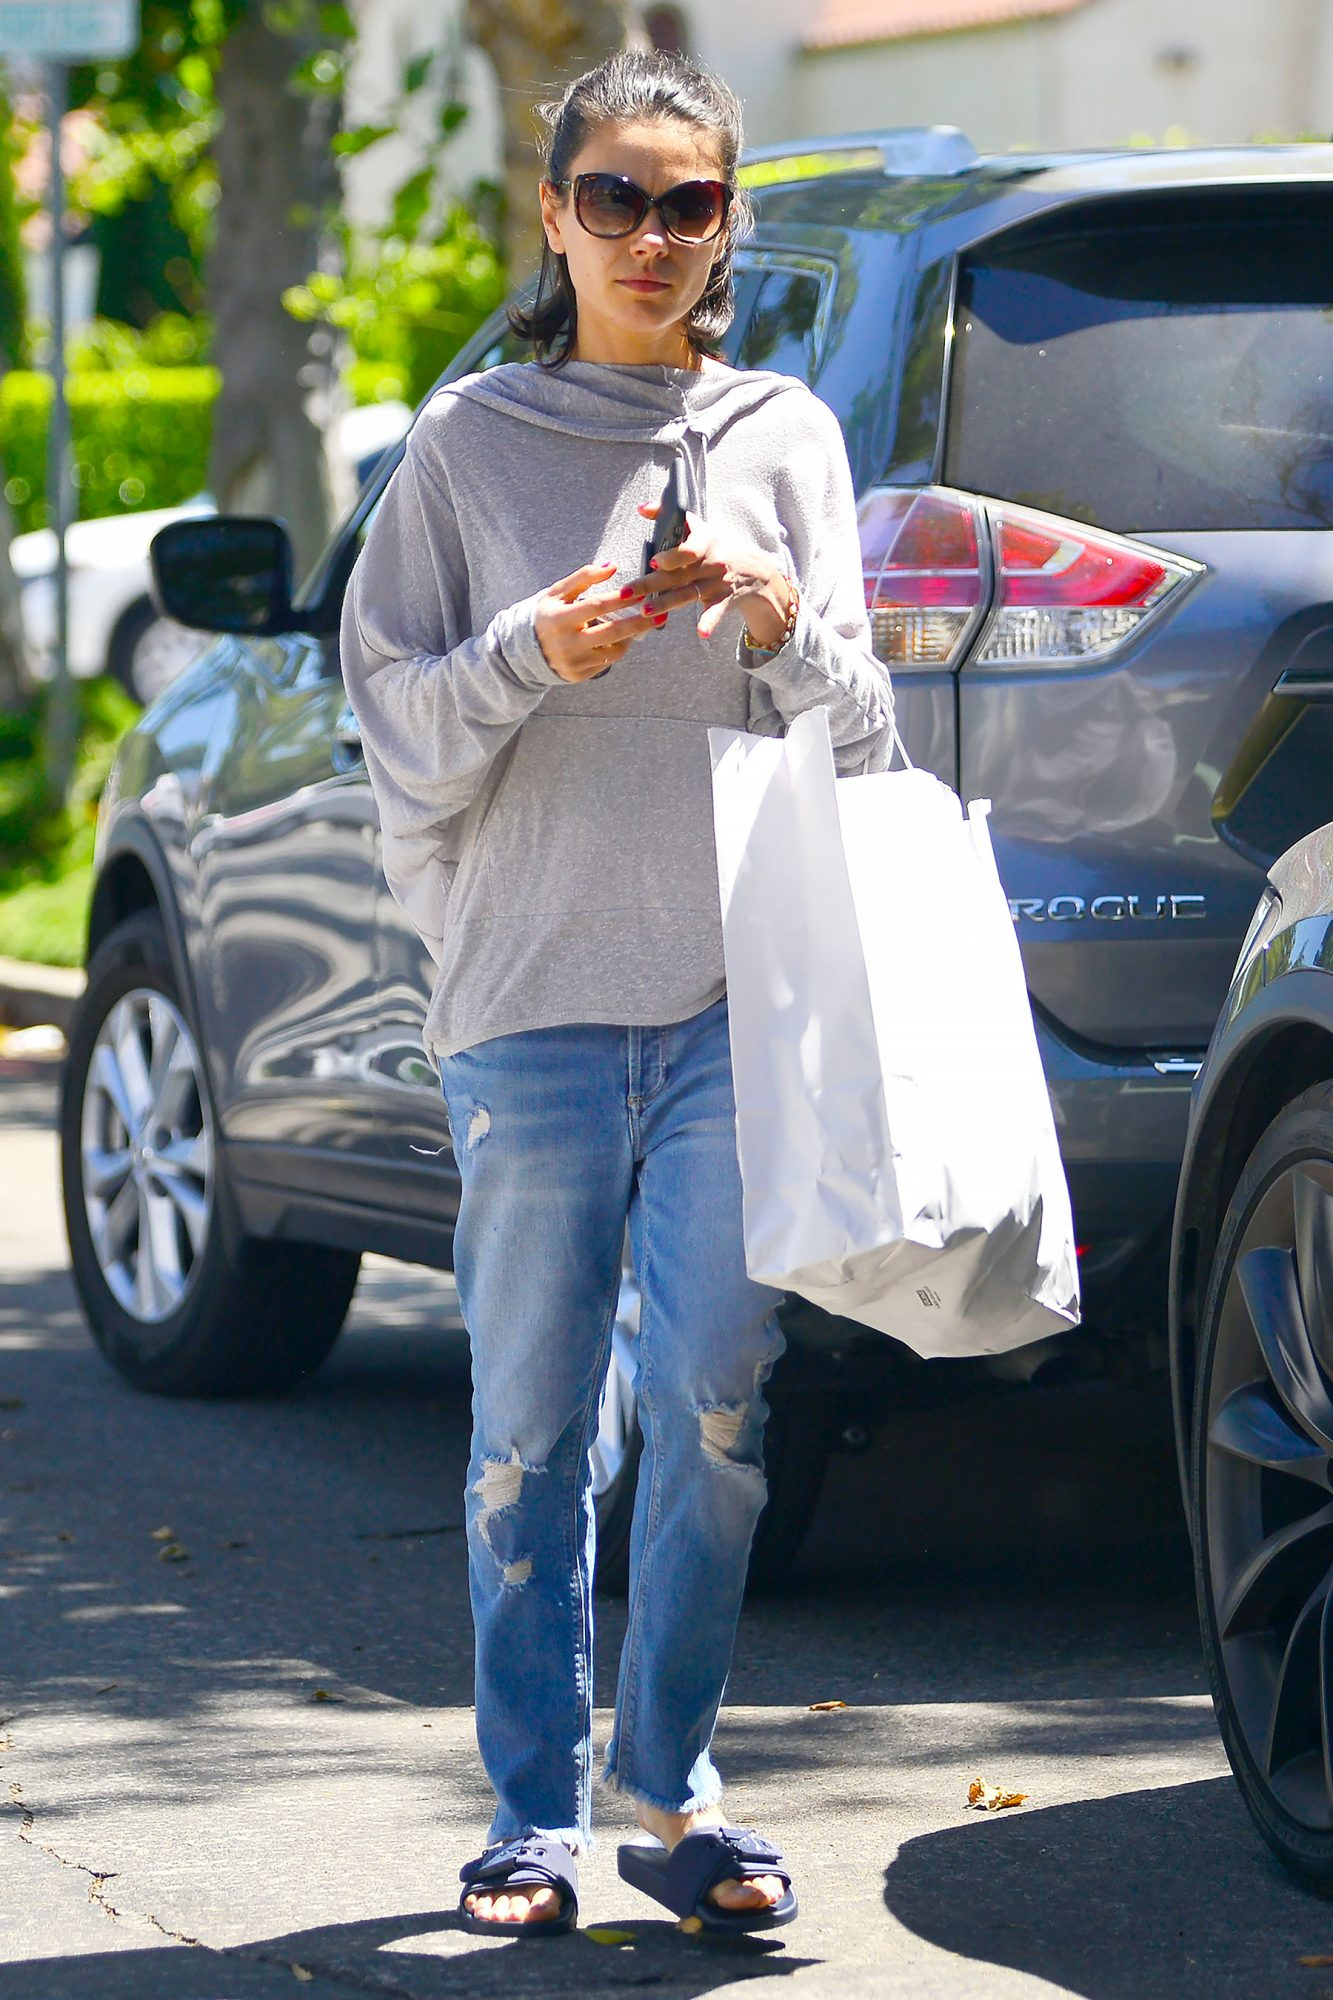 EXCLUSIVE: Mila Kunis is Spotted Shopping in Los Angeles.